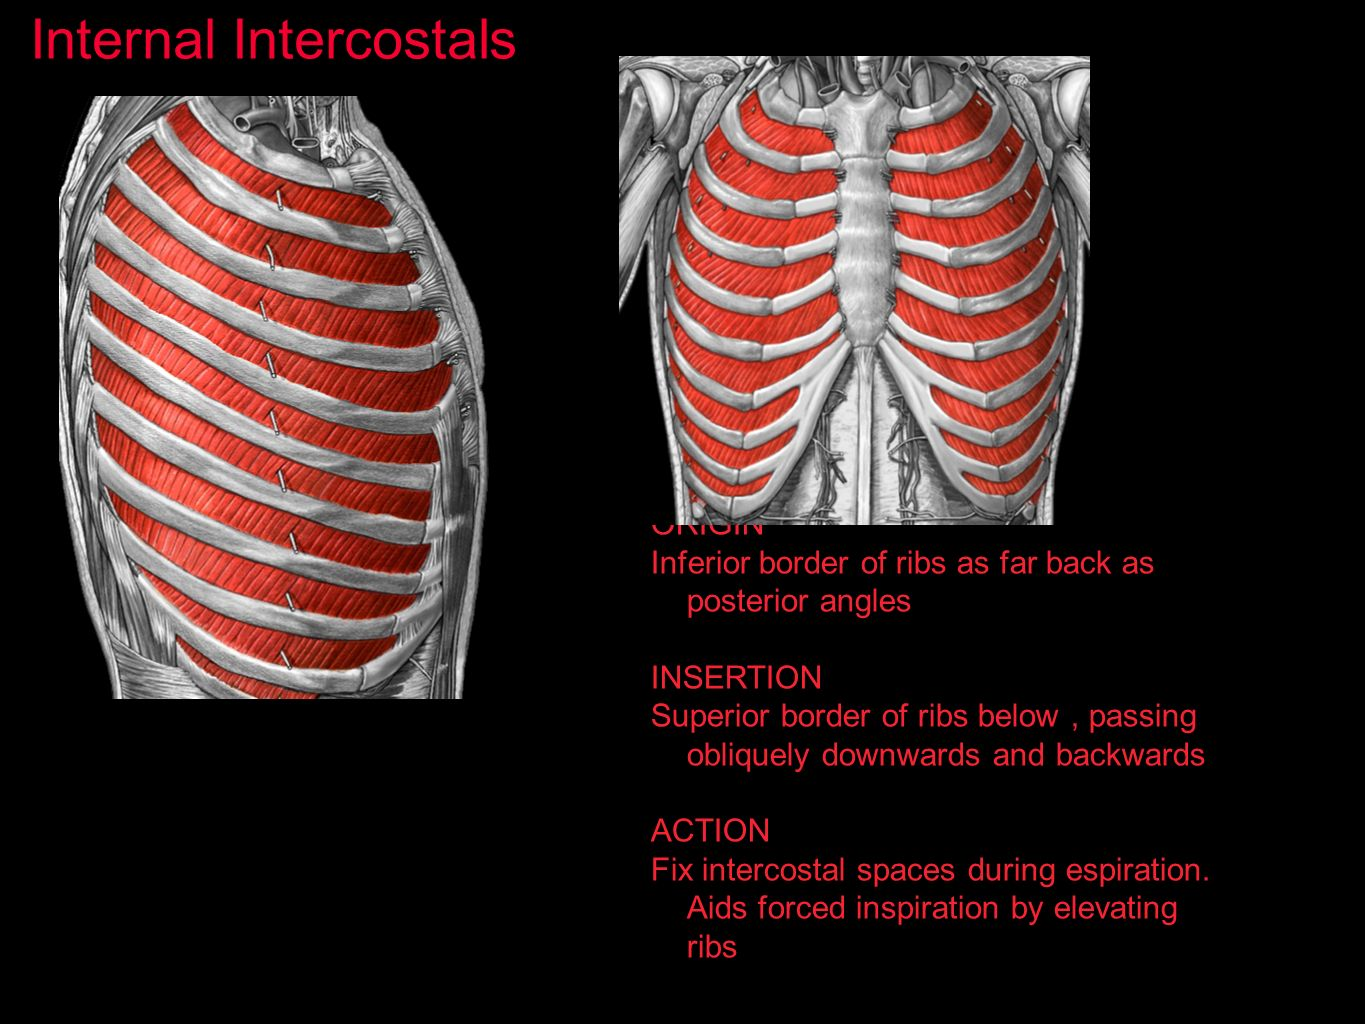 Internal Intercostals